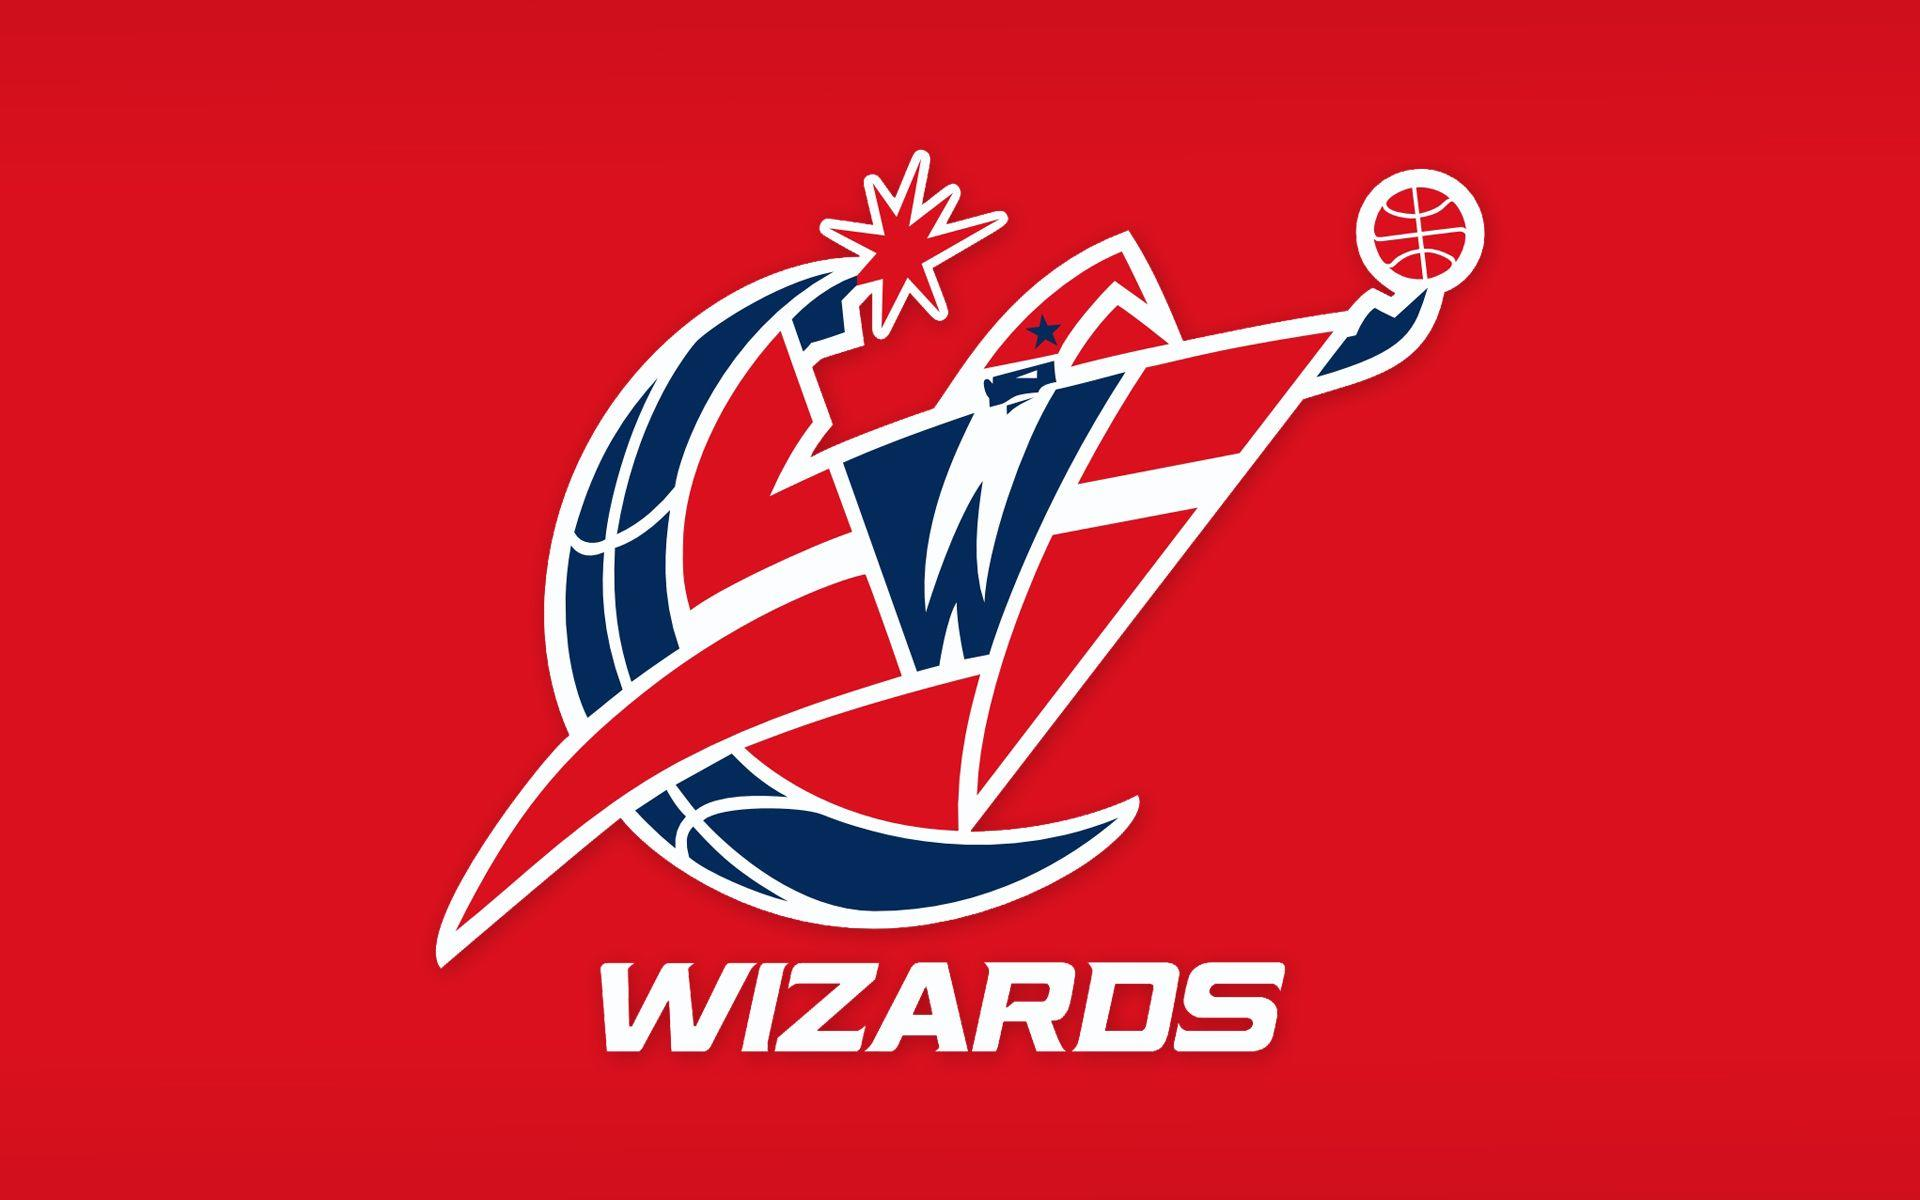 Washington Wizards Wallpaper - WallpaperSafari